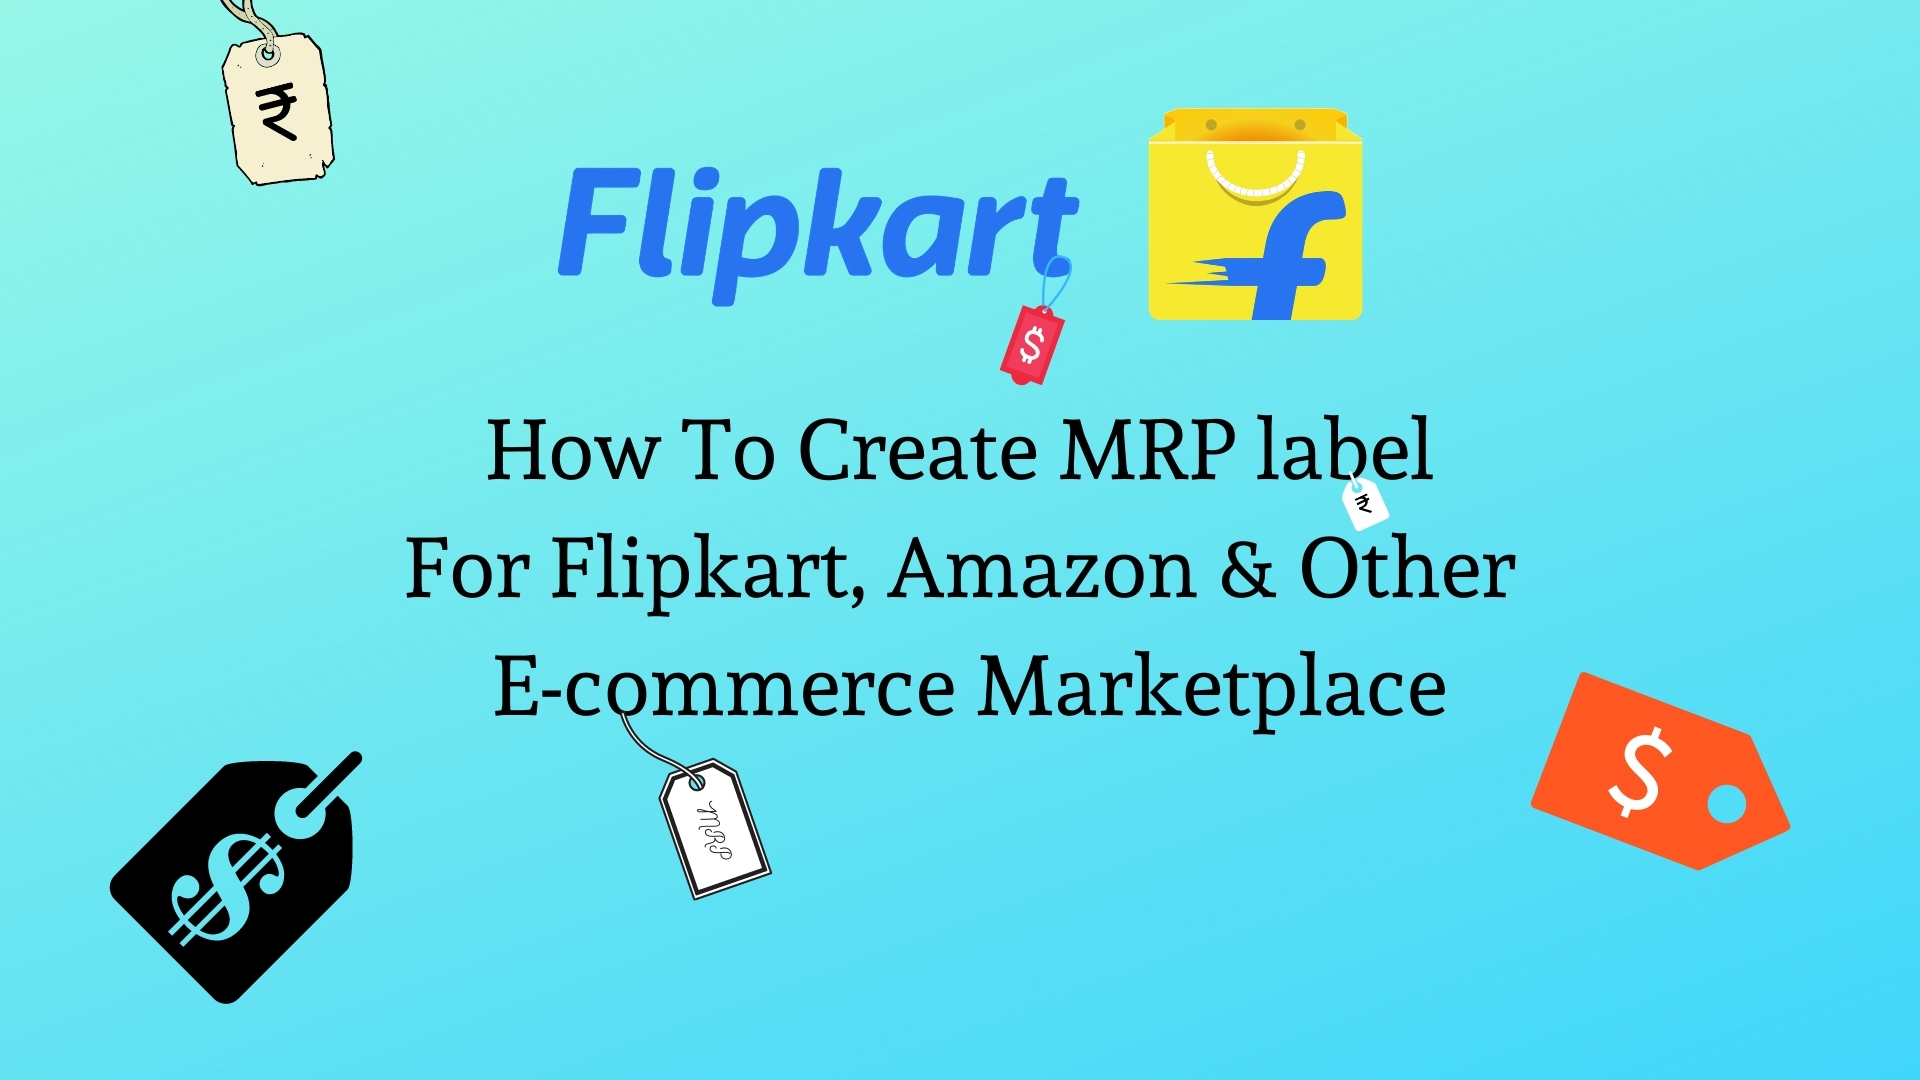 how to create mrp label, barcode label printer, how to create mrp label, how to create price tag labels, mrp label for flipkart, how to make label stickers, what is mrp label, how to print barcodes, how to make barcode, label printer for small business, create stickers, mrp tag, label printing, how to create price tag, MRP Labels for eCommerce Sellers